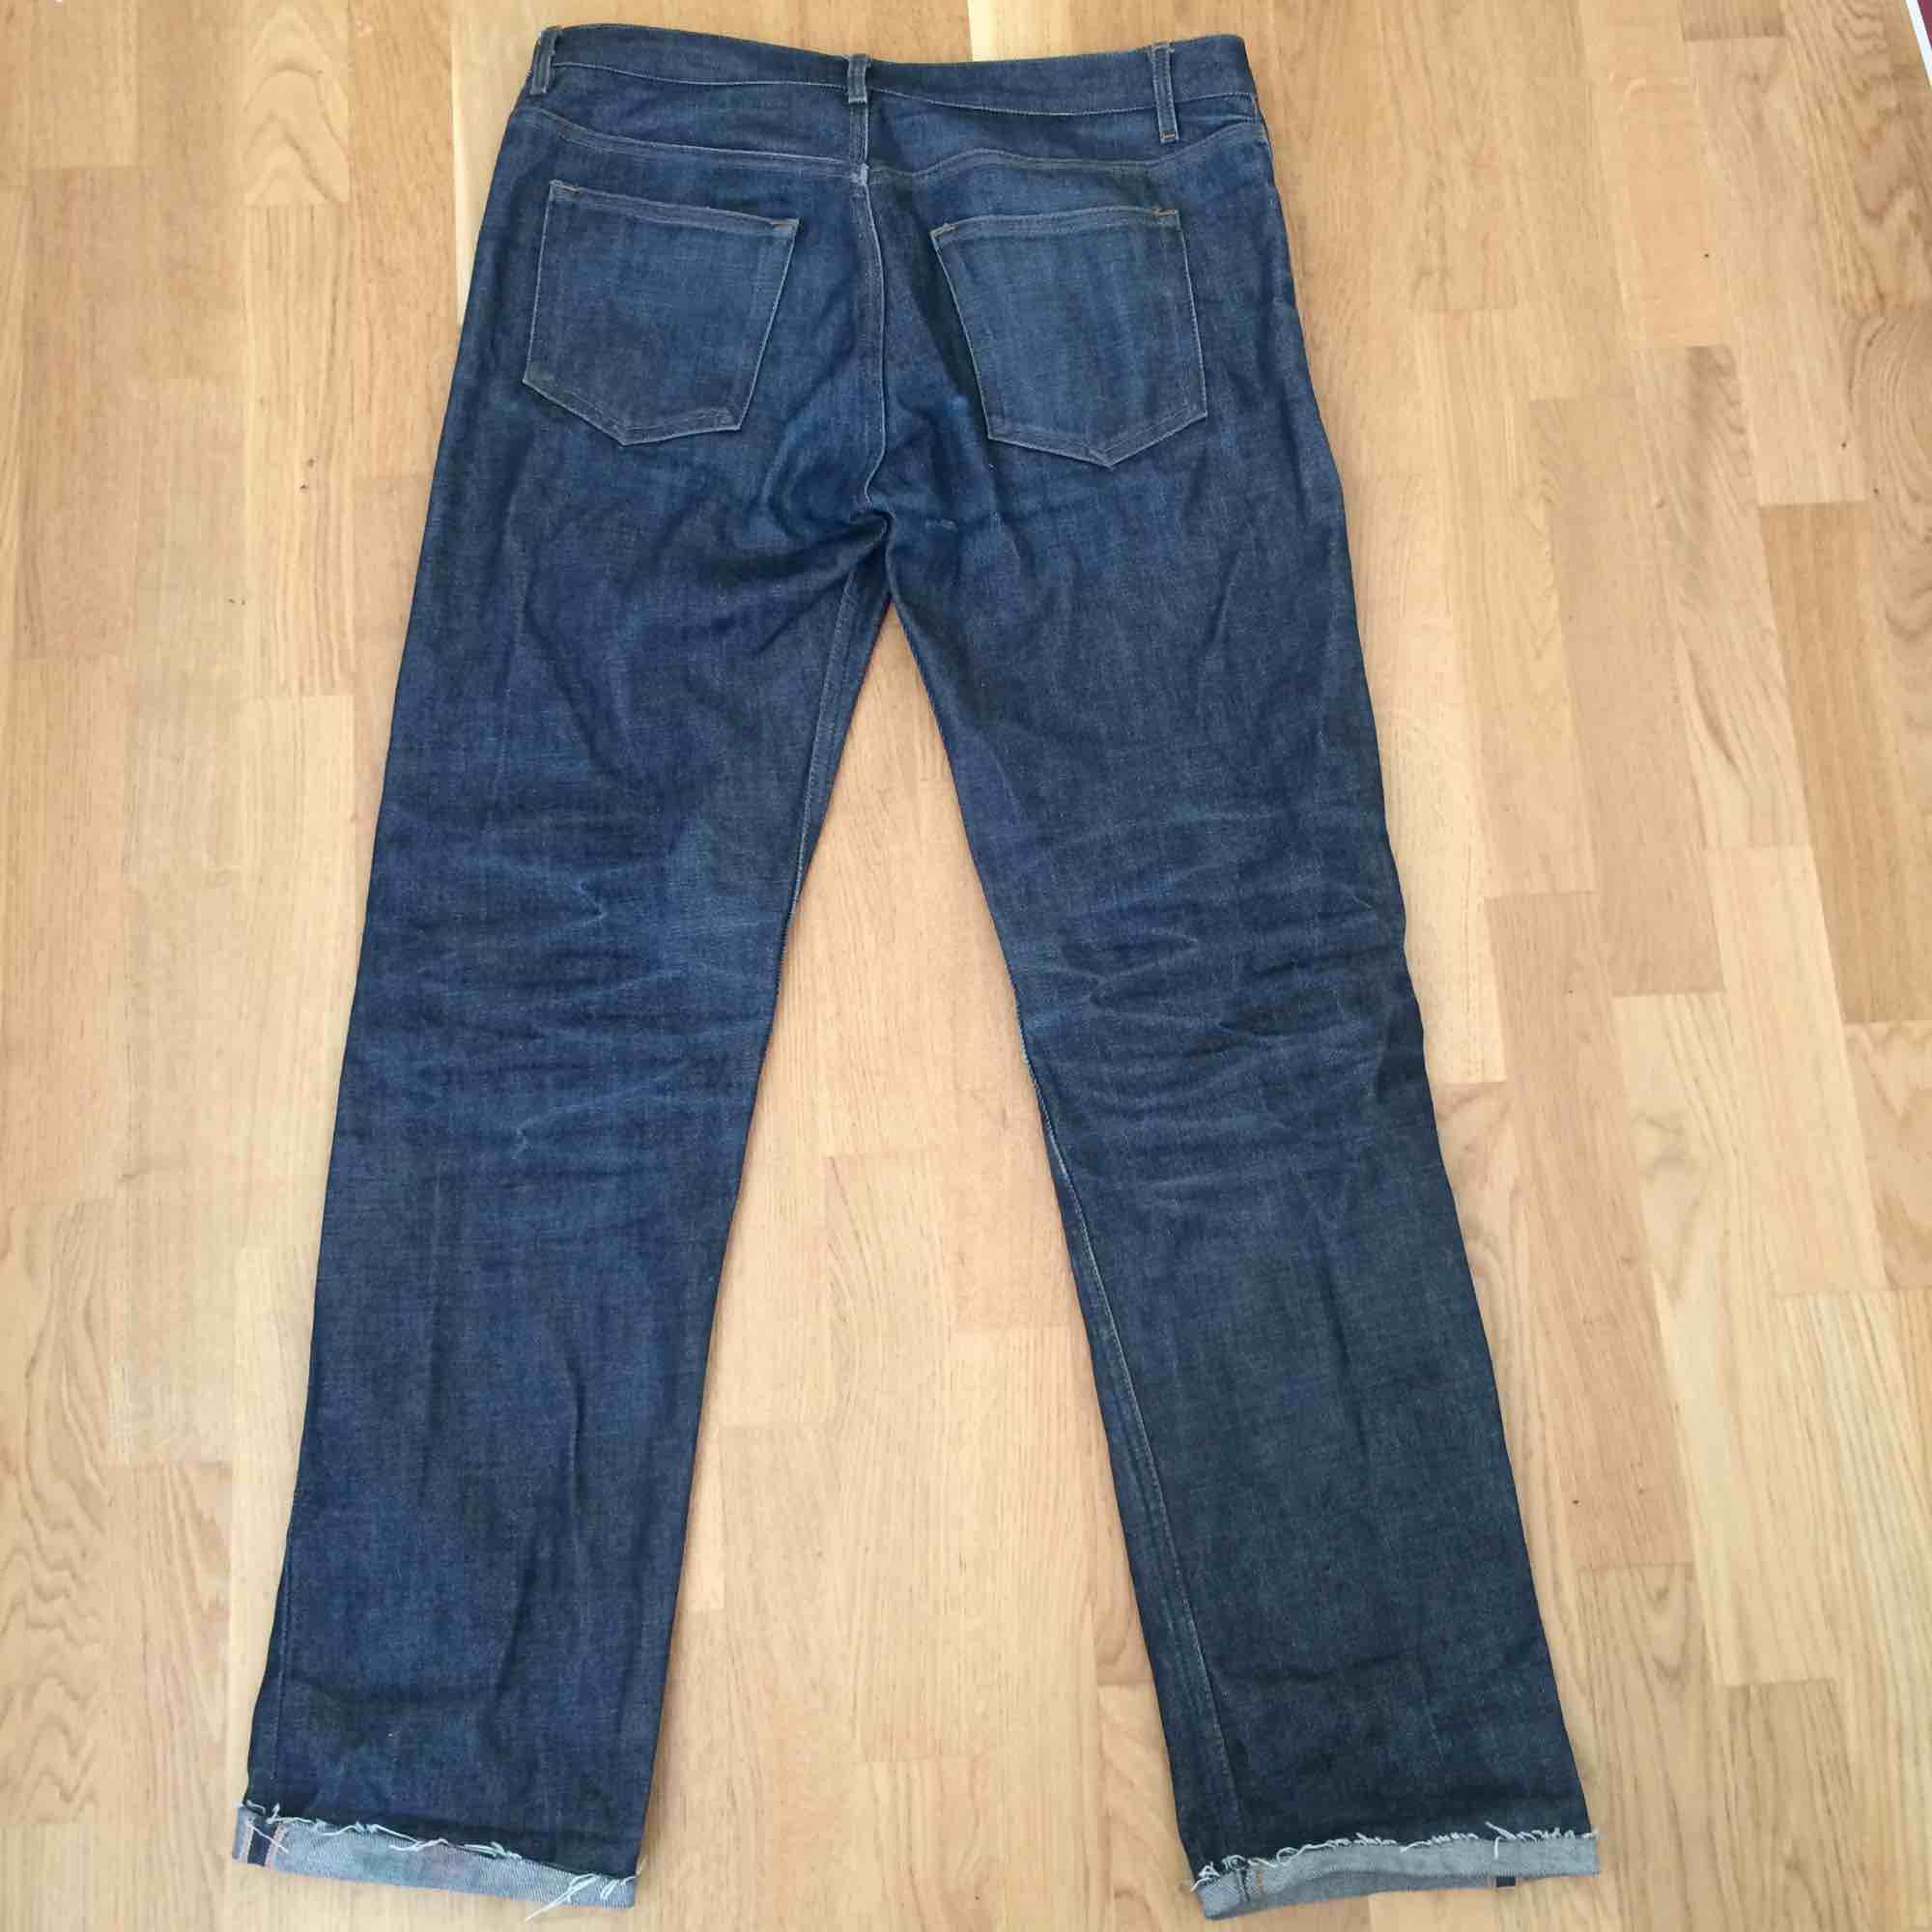 APC New standard, 31 waist cut down to around 32 in the leg. Got a lot of life and some nice fades. Jeans & Byxor.